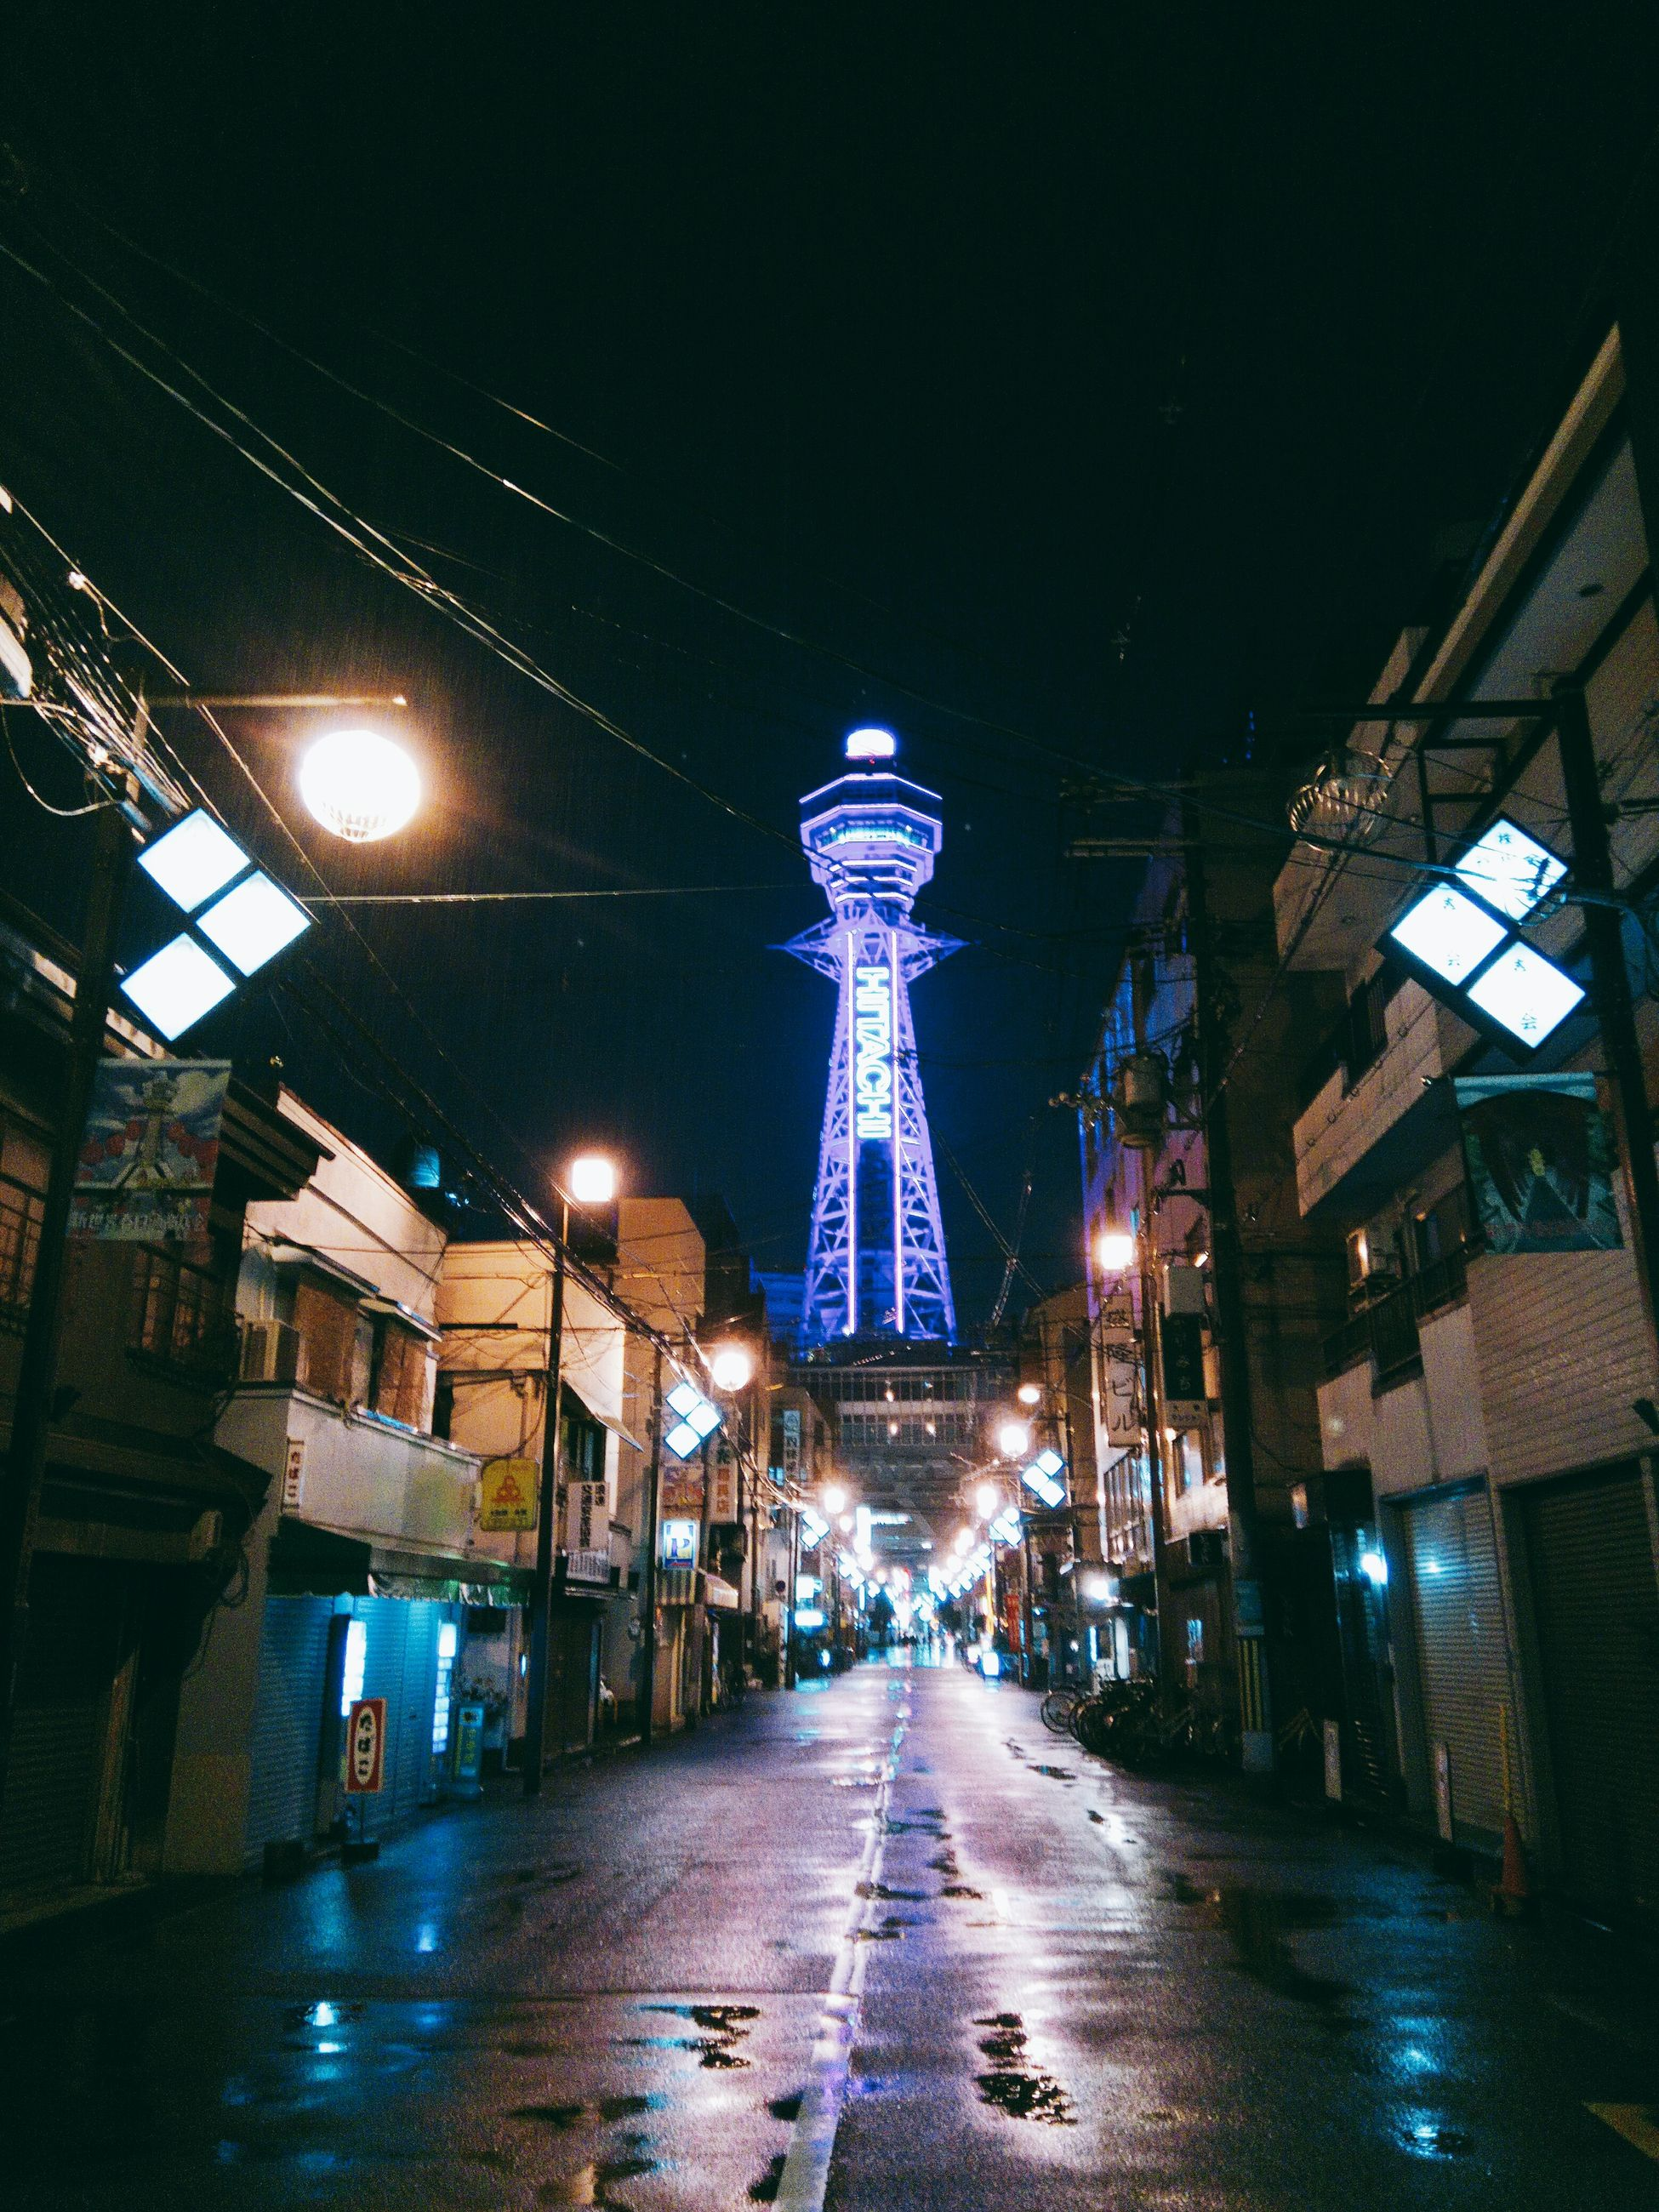 illuminated, night, architecture, built structure, direction, lighting equipment, building exterior, the way forward, street, city, transportation, tower, building, no people, street light, electricity, sky, outdoors, nature, communication, light